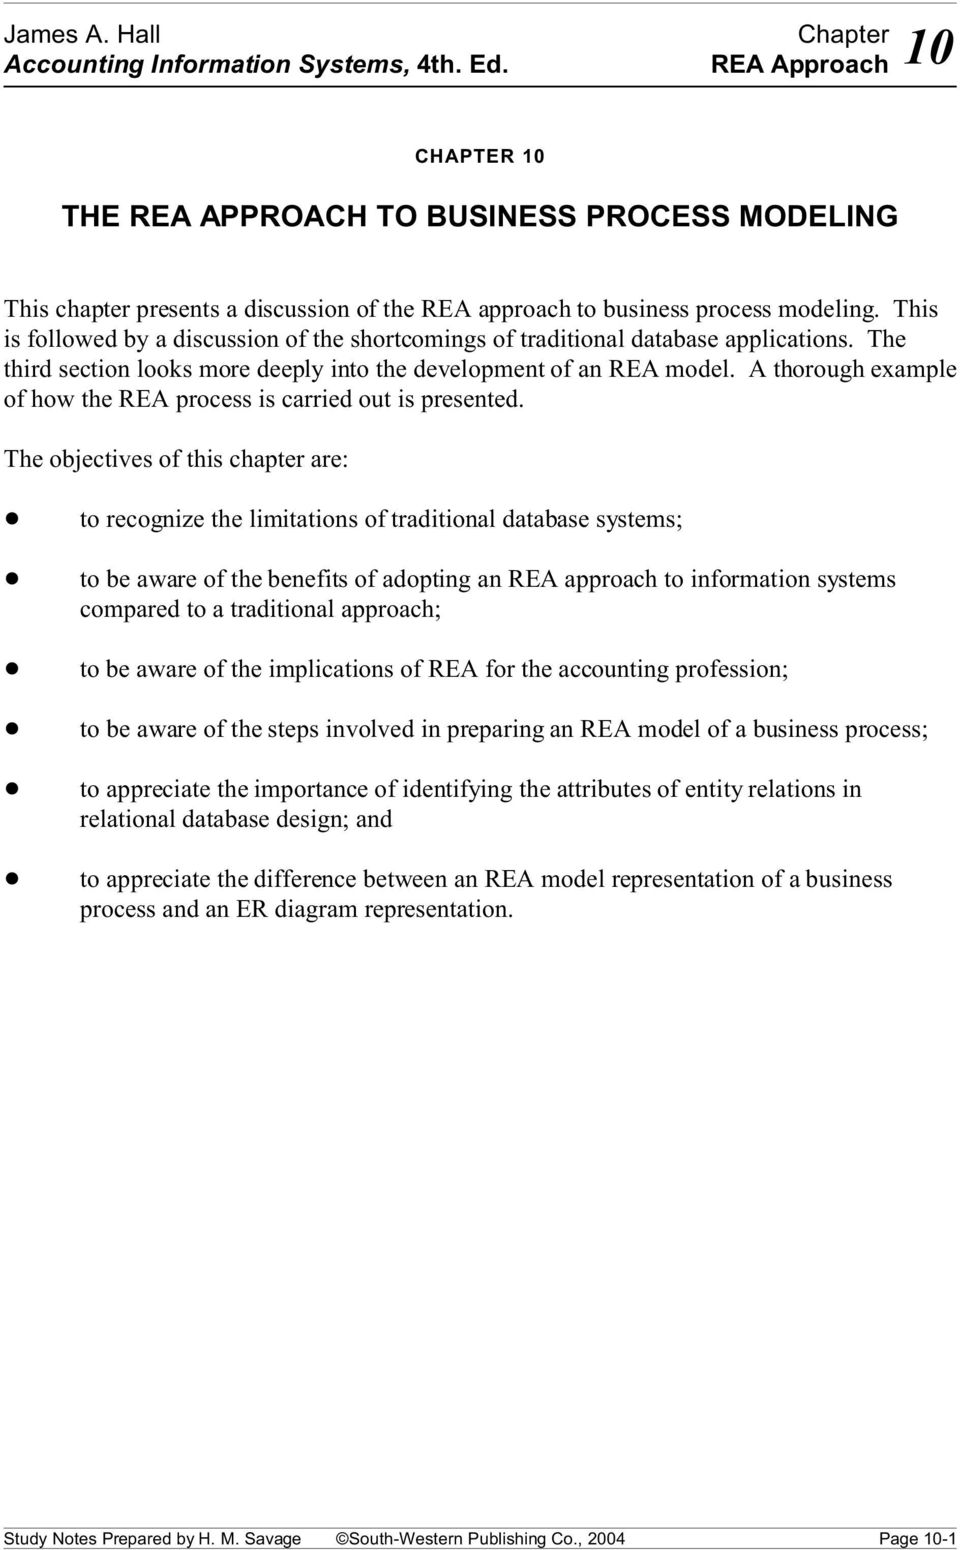 The rea approach to business process modeling pdf a thorough example of how the rea process is carried out is presented the objectives ccuart Gallery